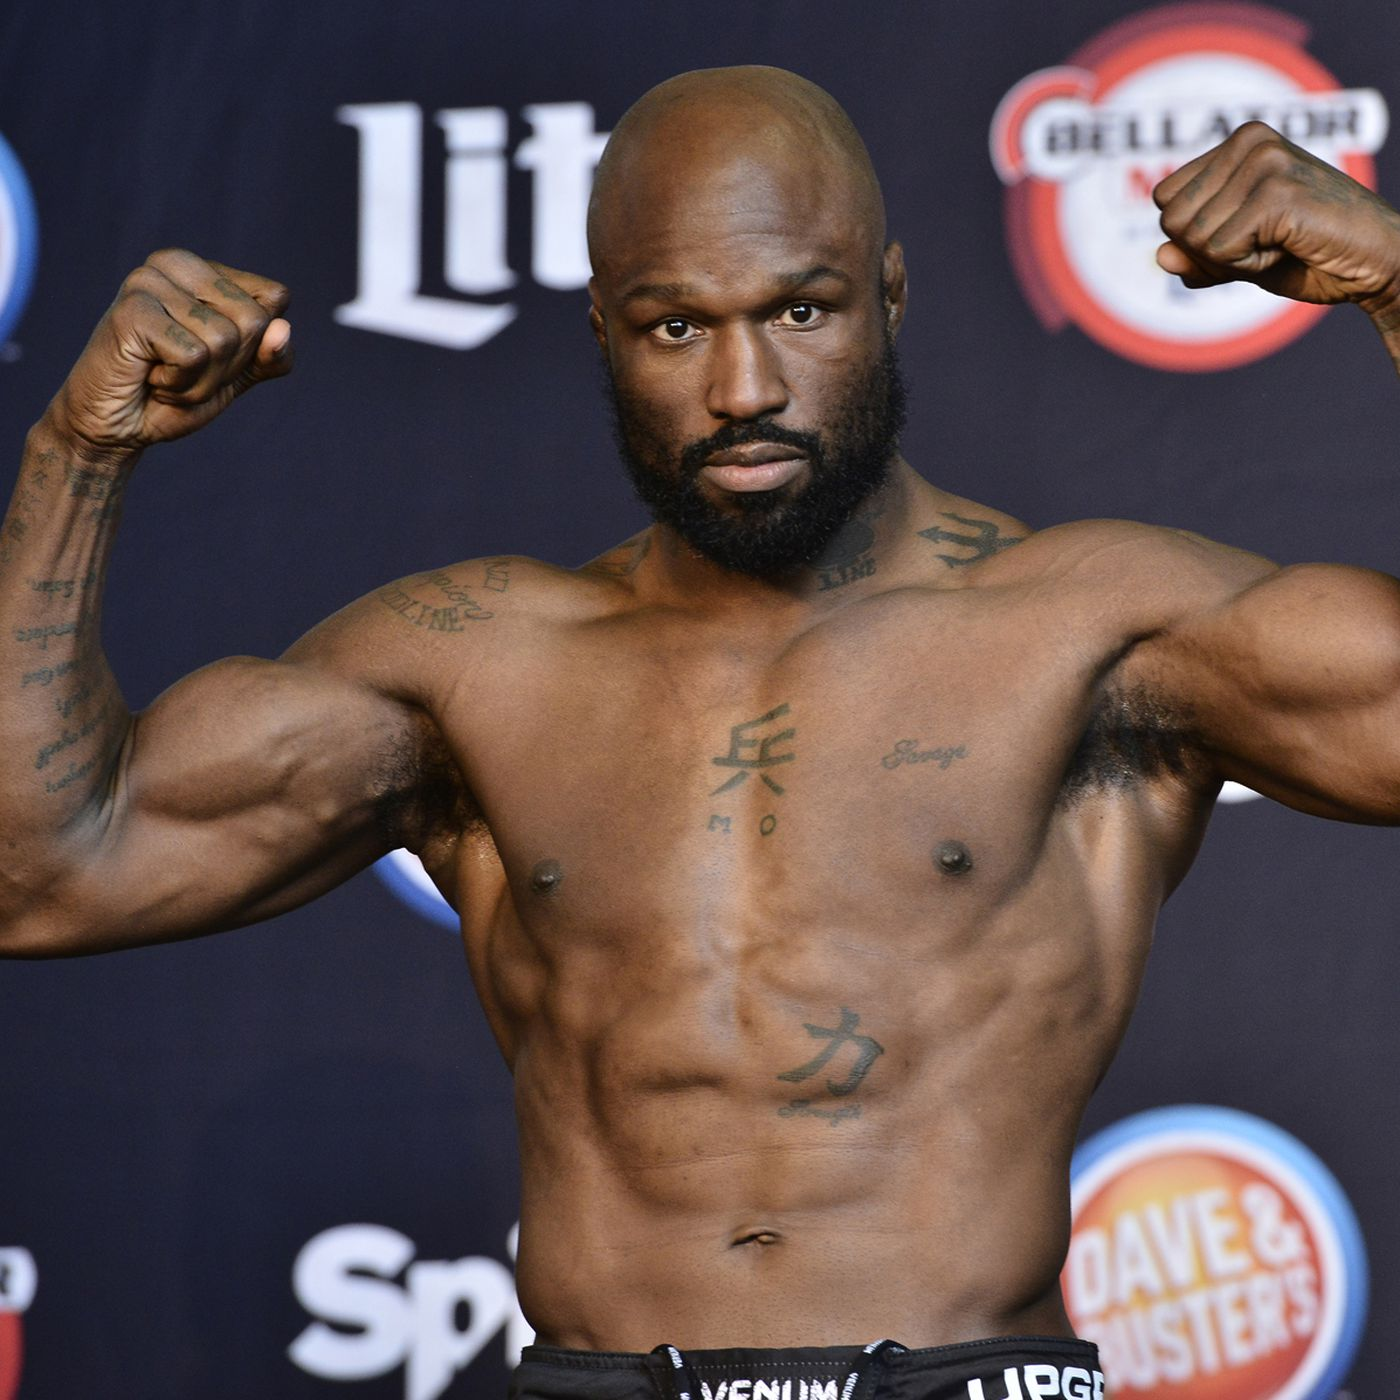 Bellator 199: Ryan Bader? Fedor? King Mo just wants to 'whup some ass' in  San Jose - MMAmania.com